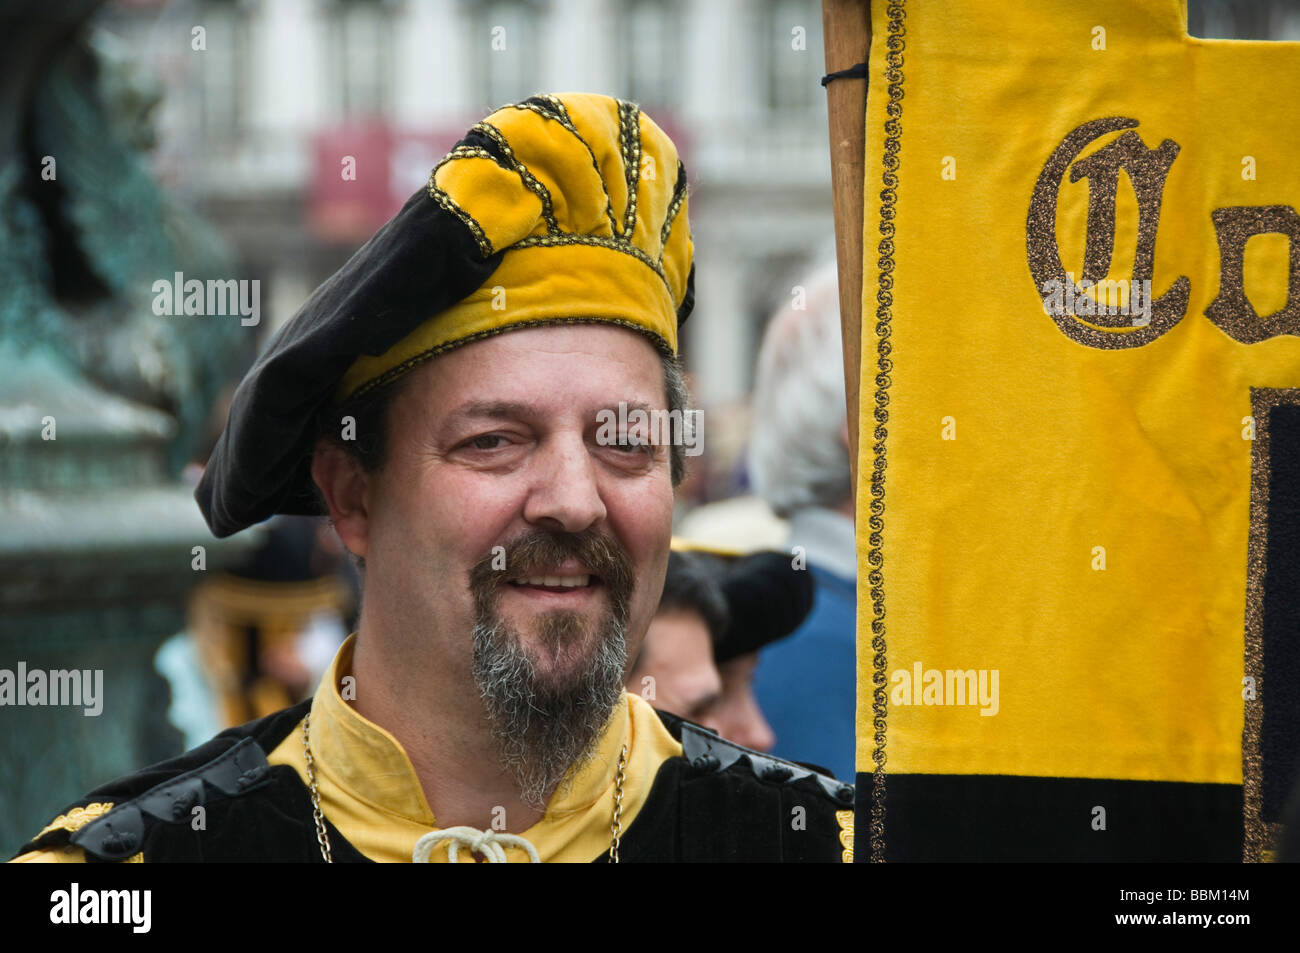 Costumed man in parade Piazza San Marco Venice Italy - Stock Image